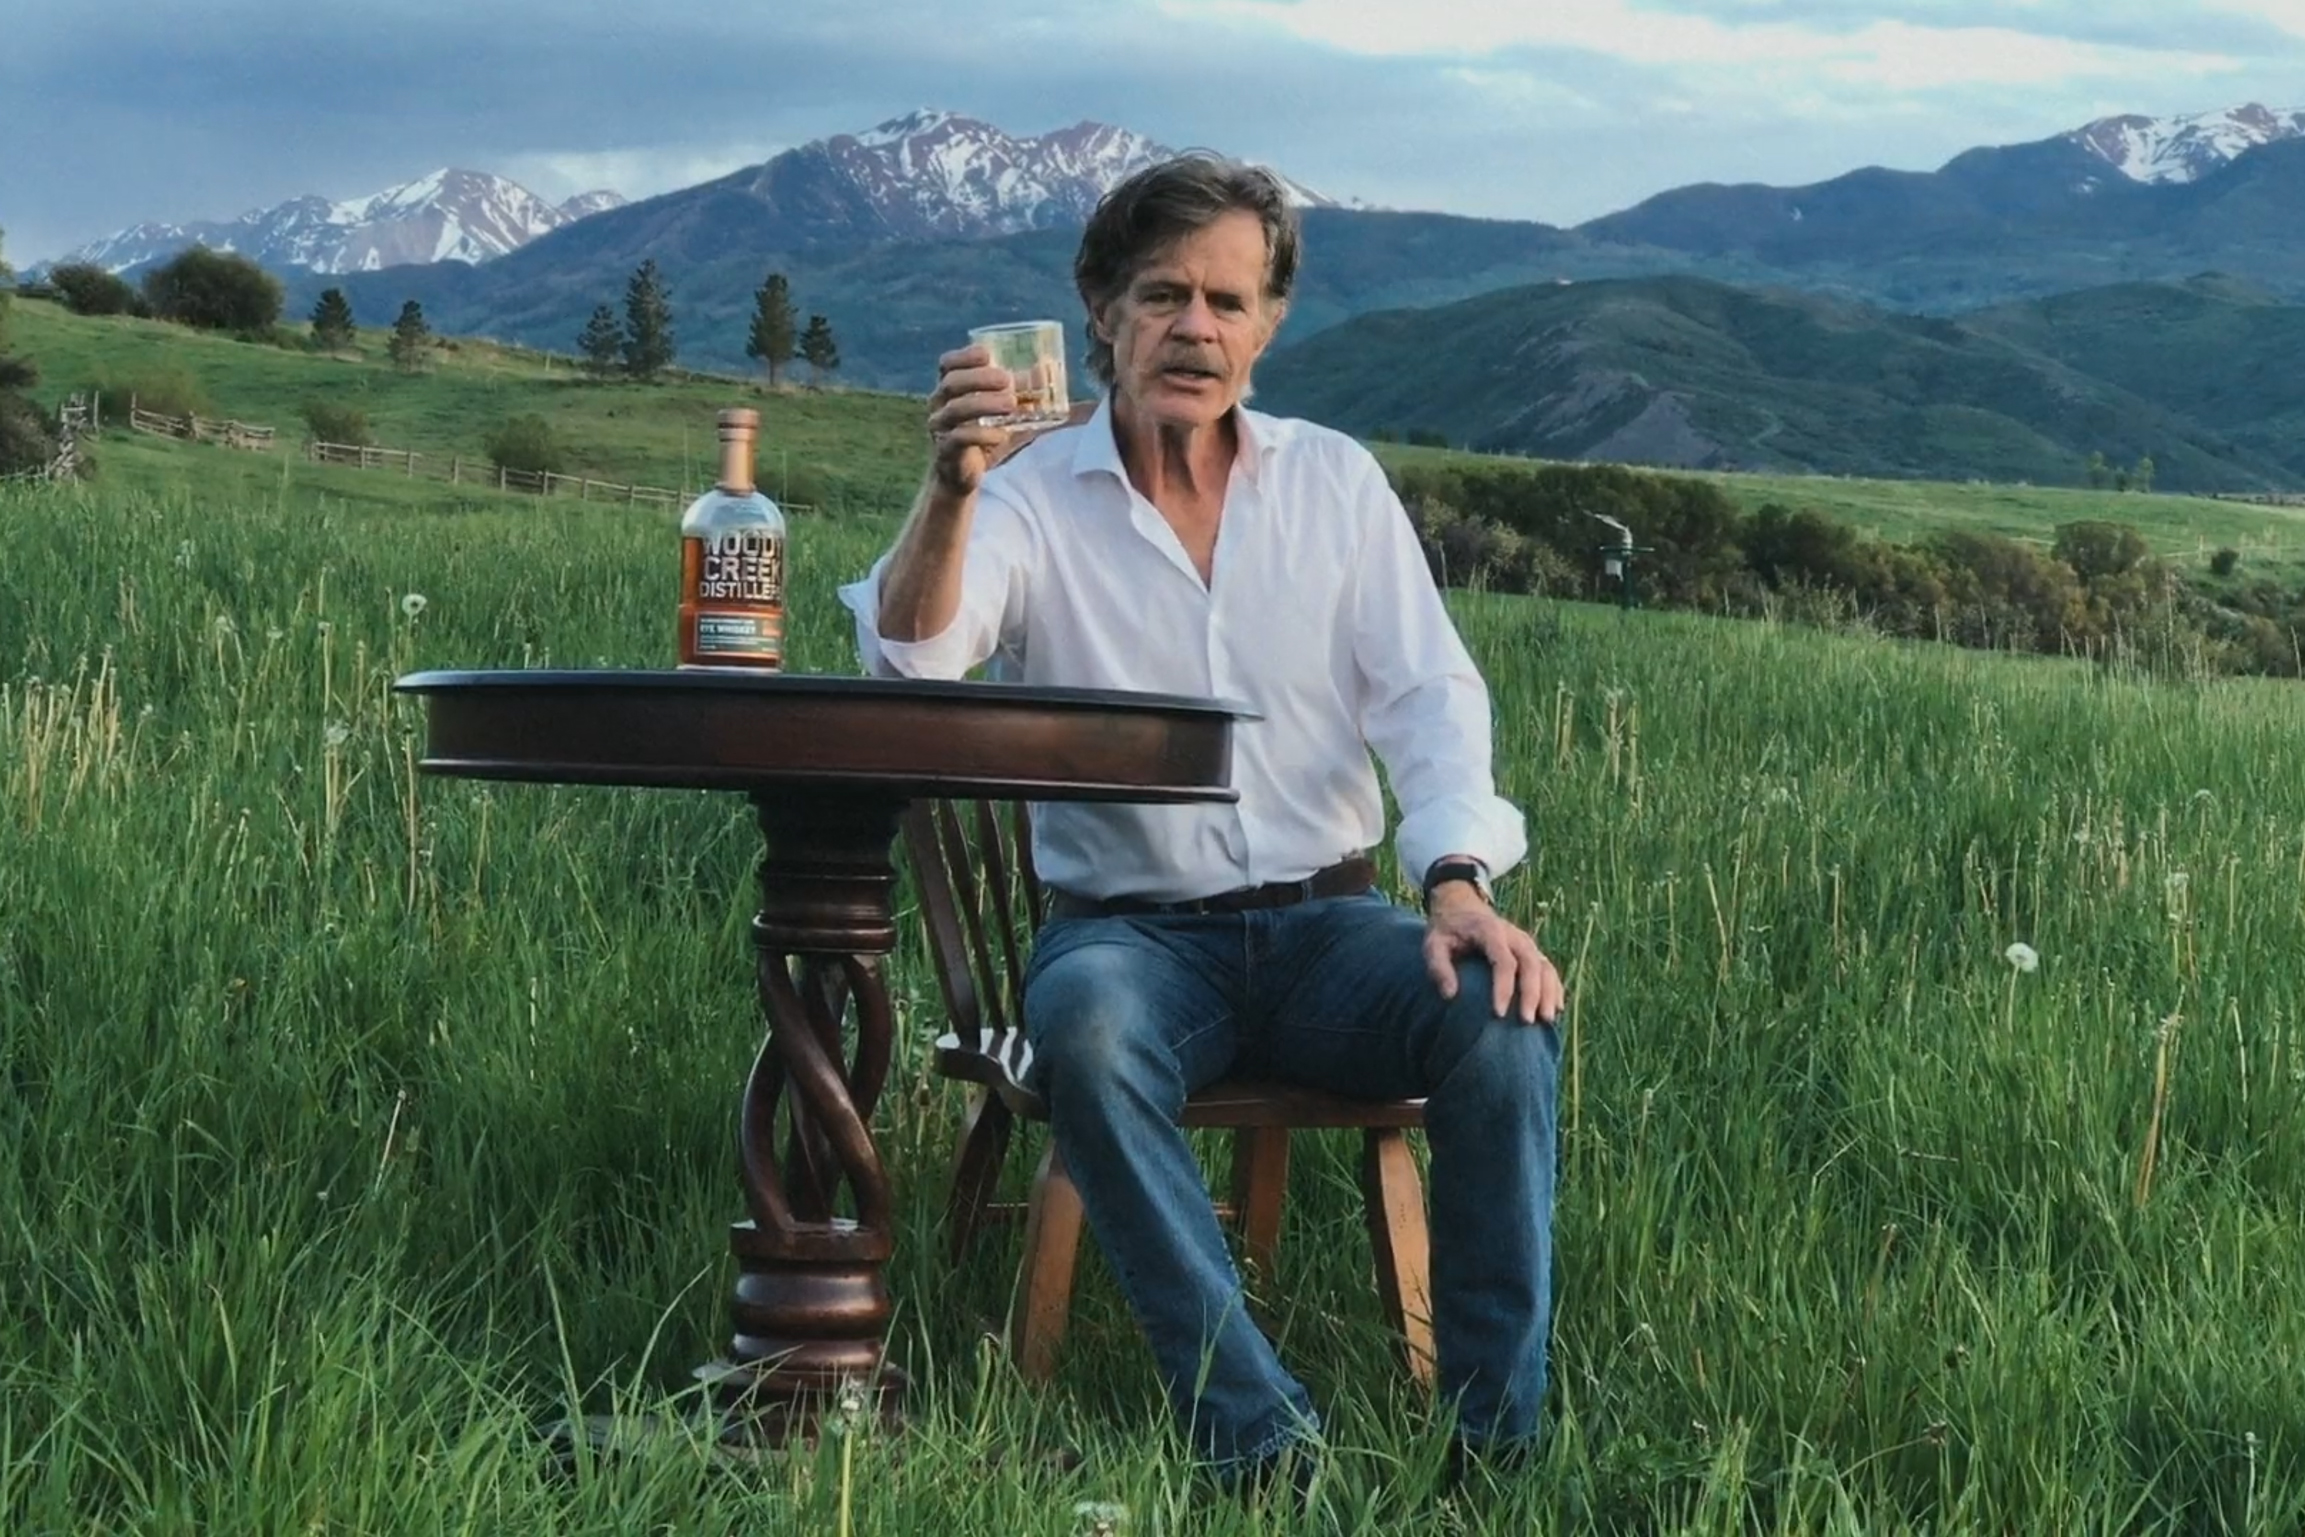 Woody Creek Distillers: Why I Put My Pants On